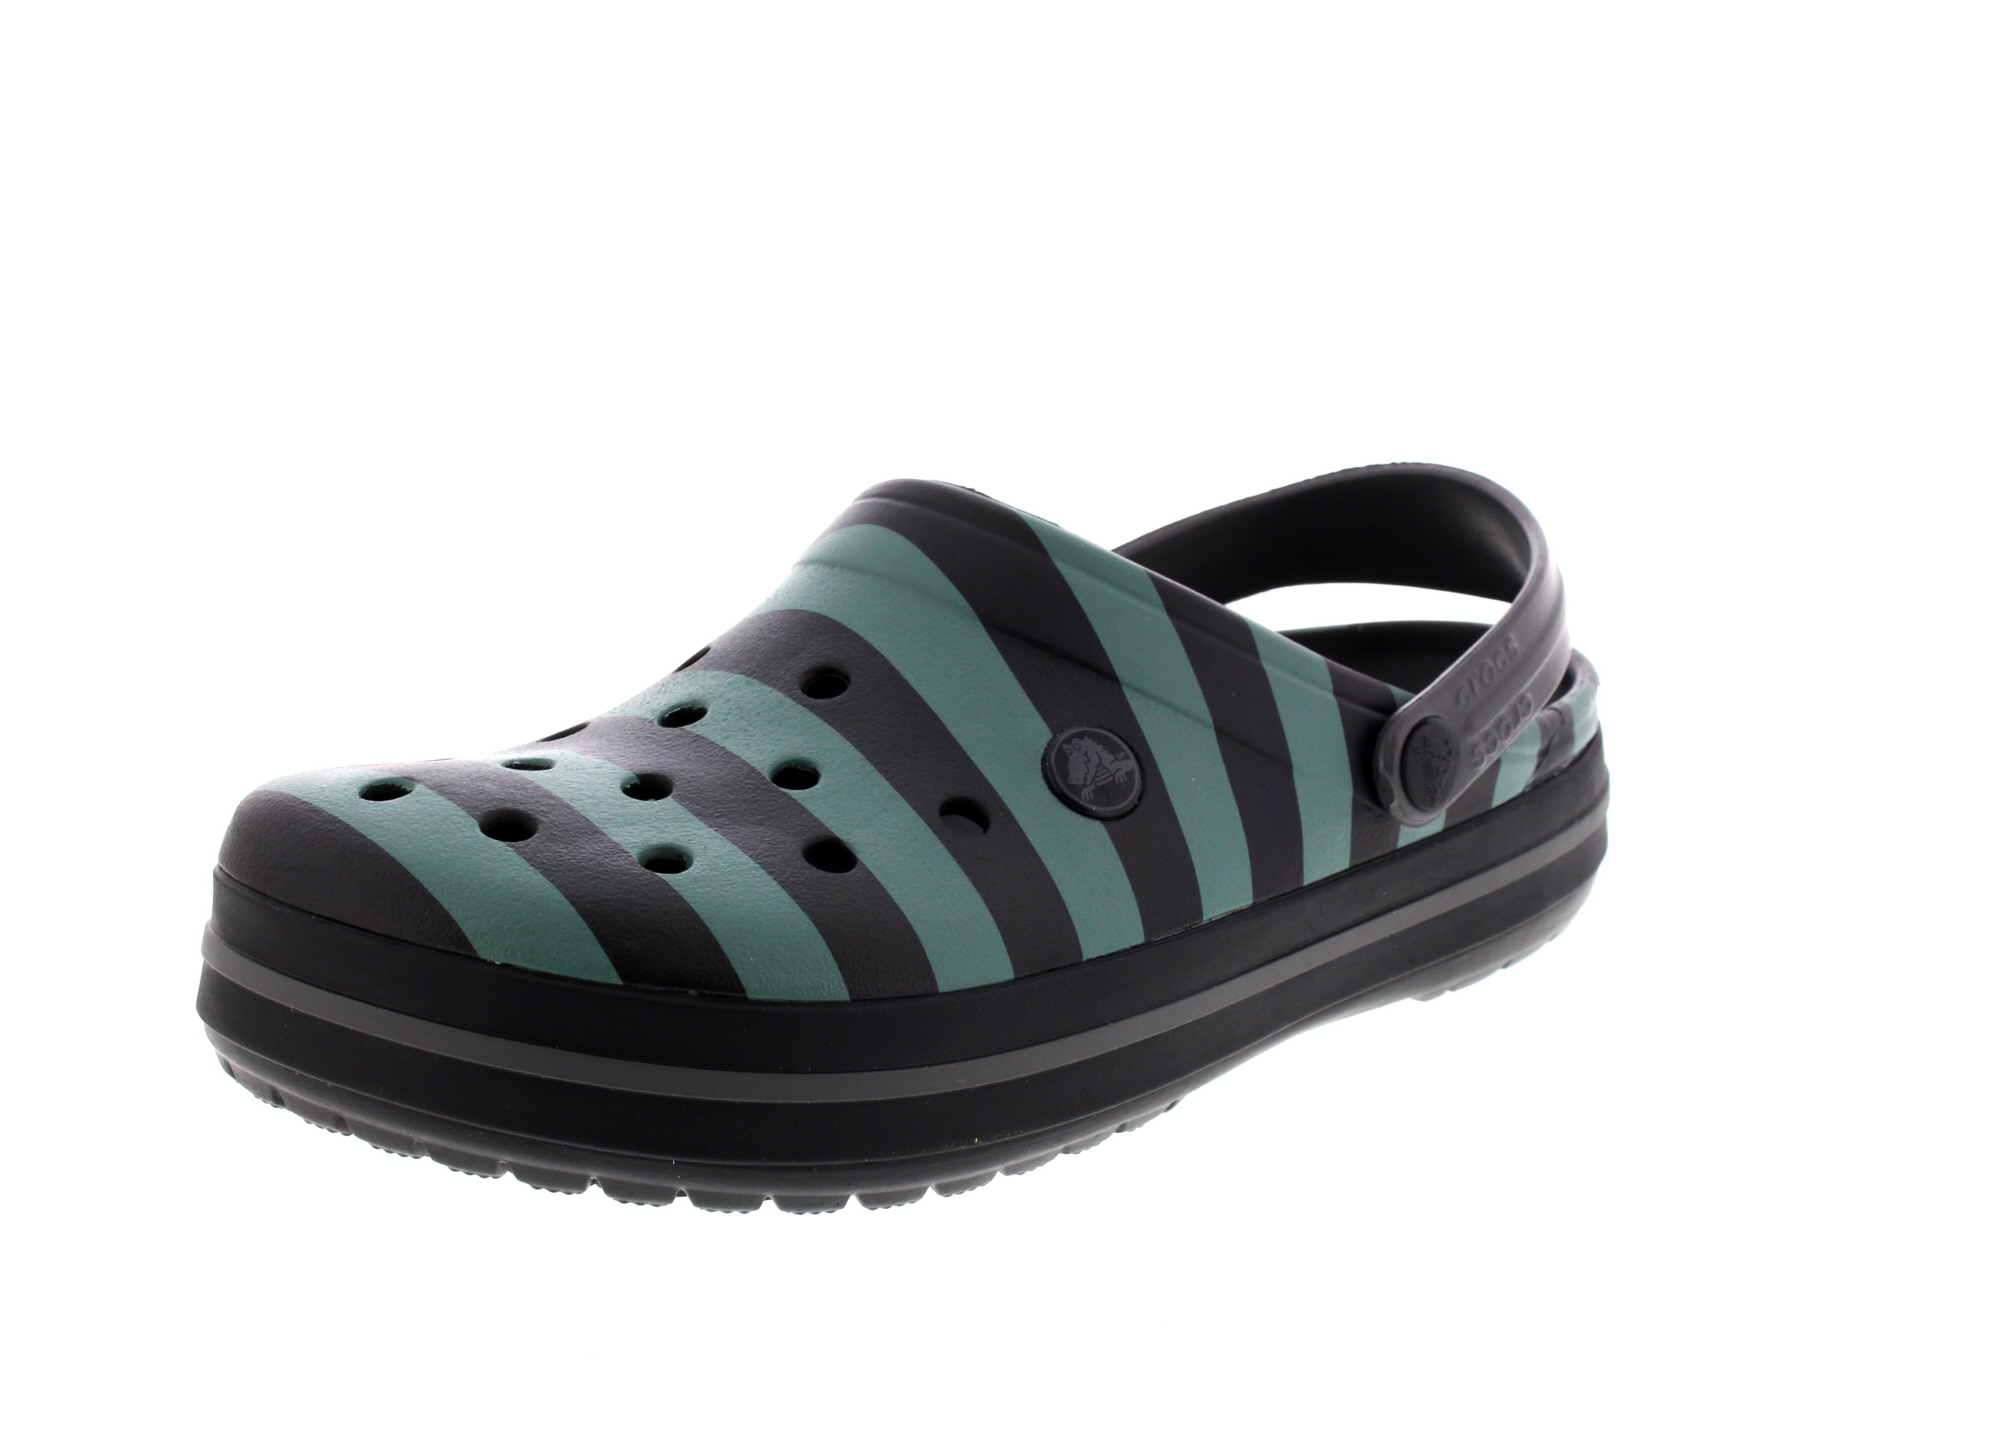 CROCS - Exclusive - CROCBAND GRAPHIC Clog - black graphite0